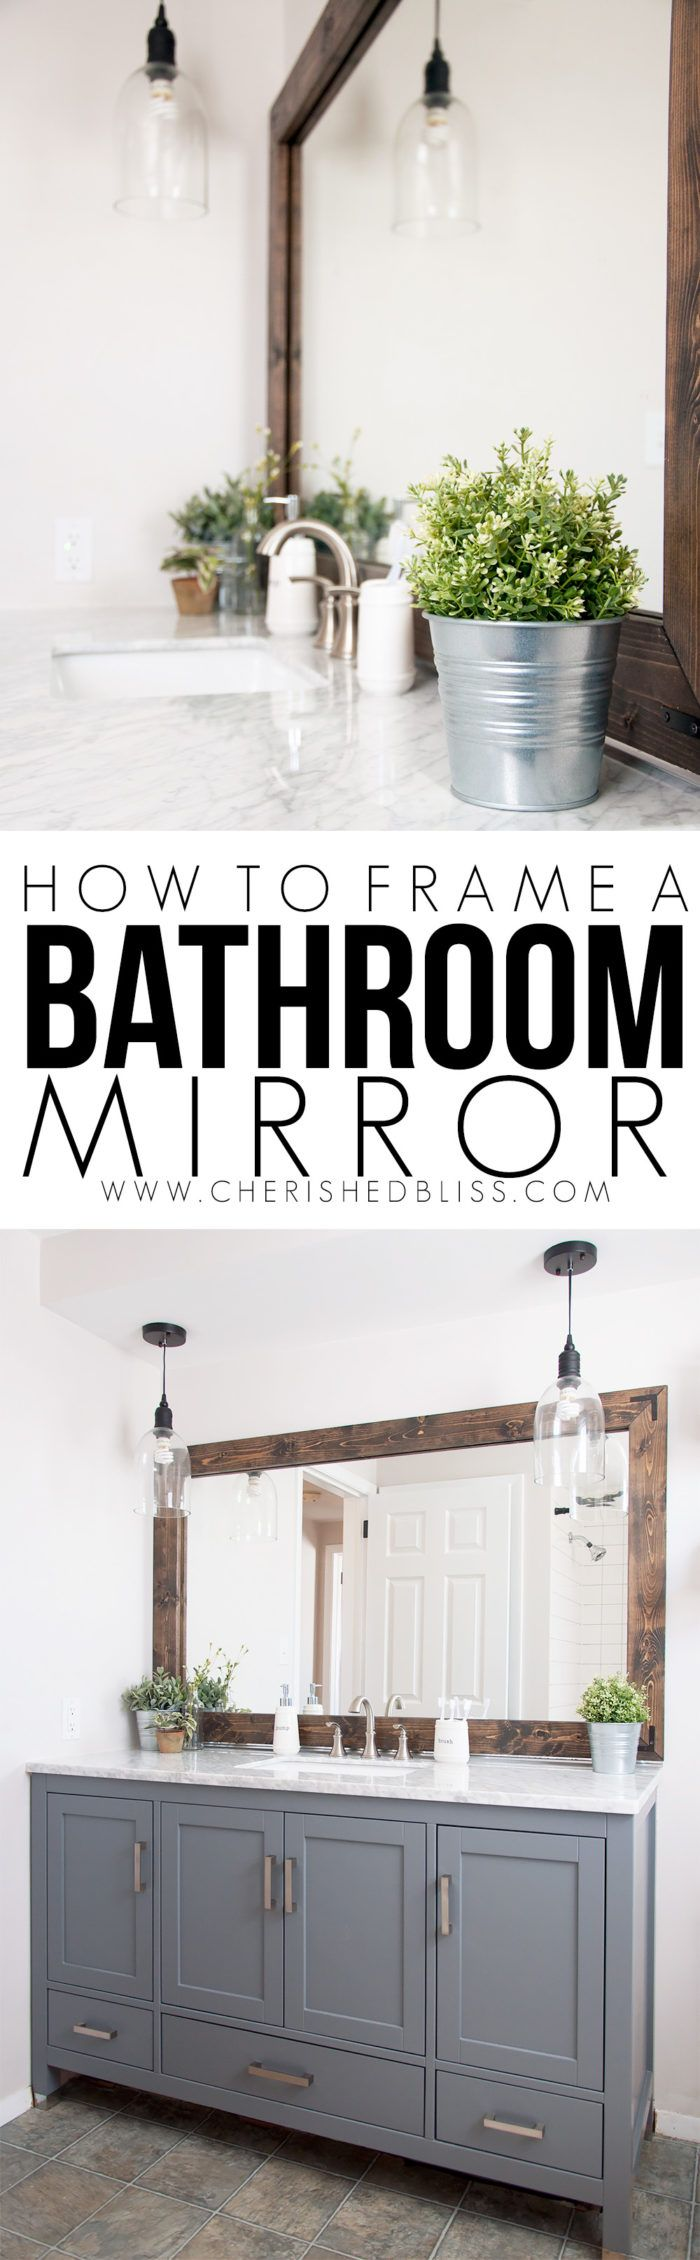 Bathroom Mirror Makeover how to frame a bathroom mirror | bathroom mirrors, tutorials and house